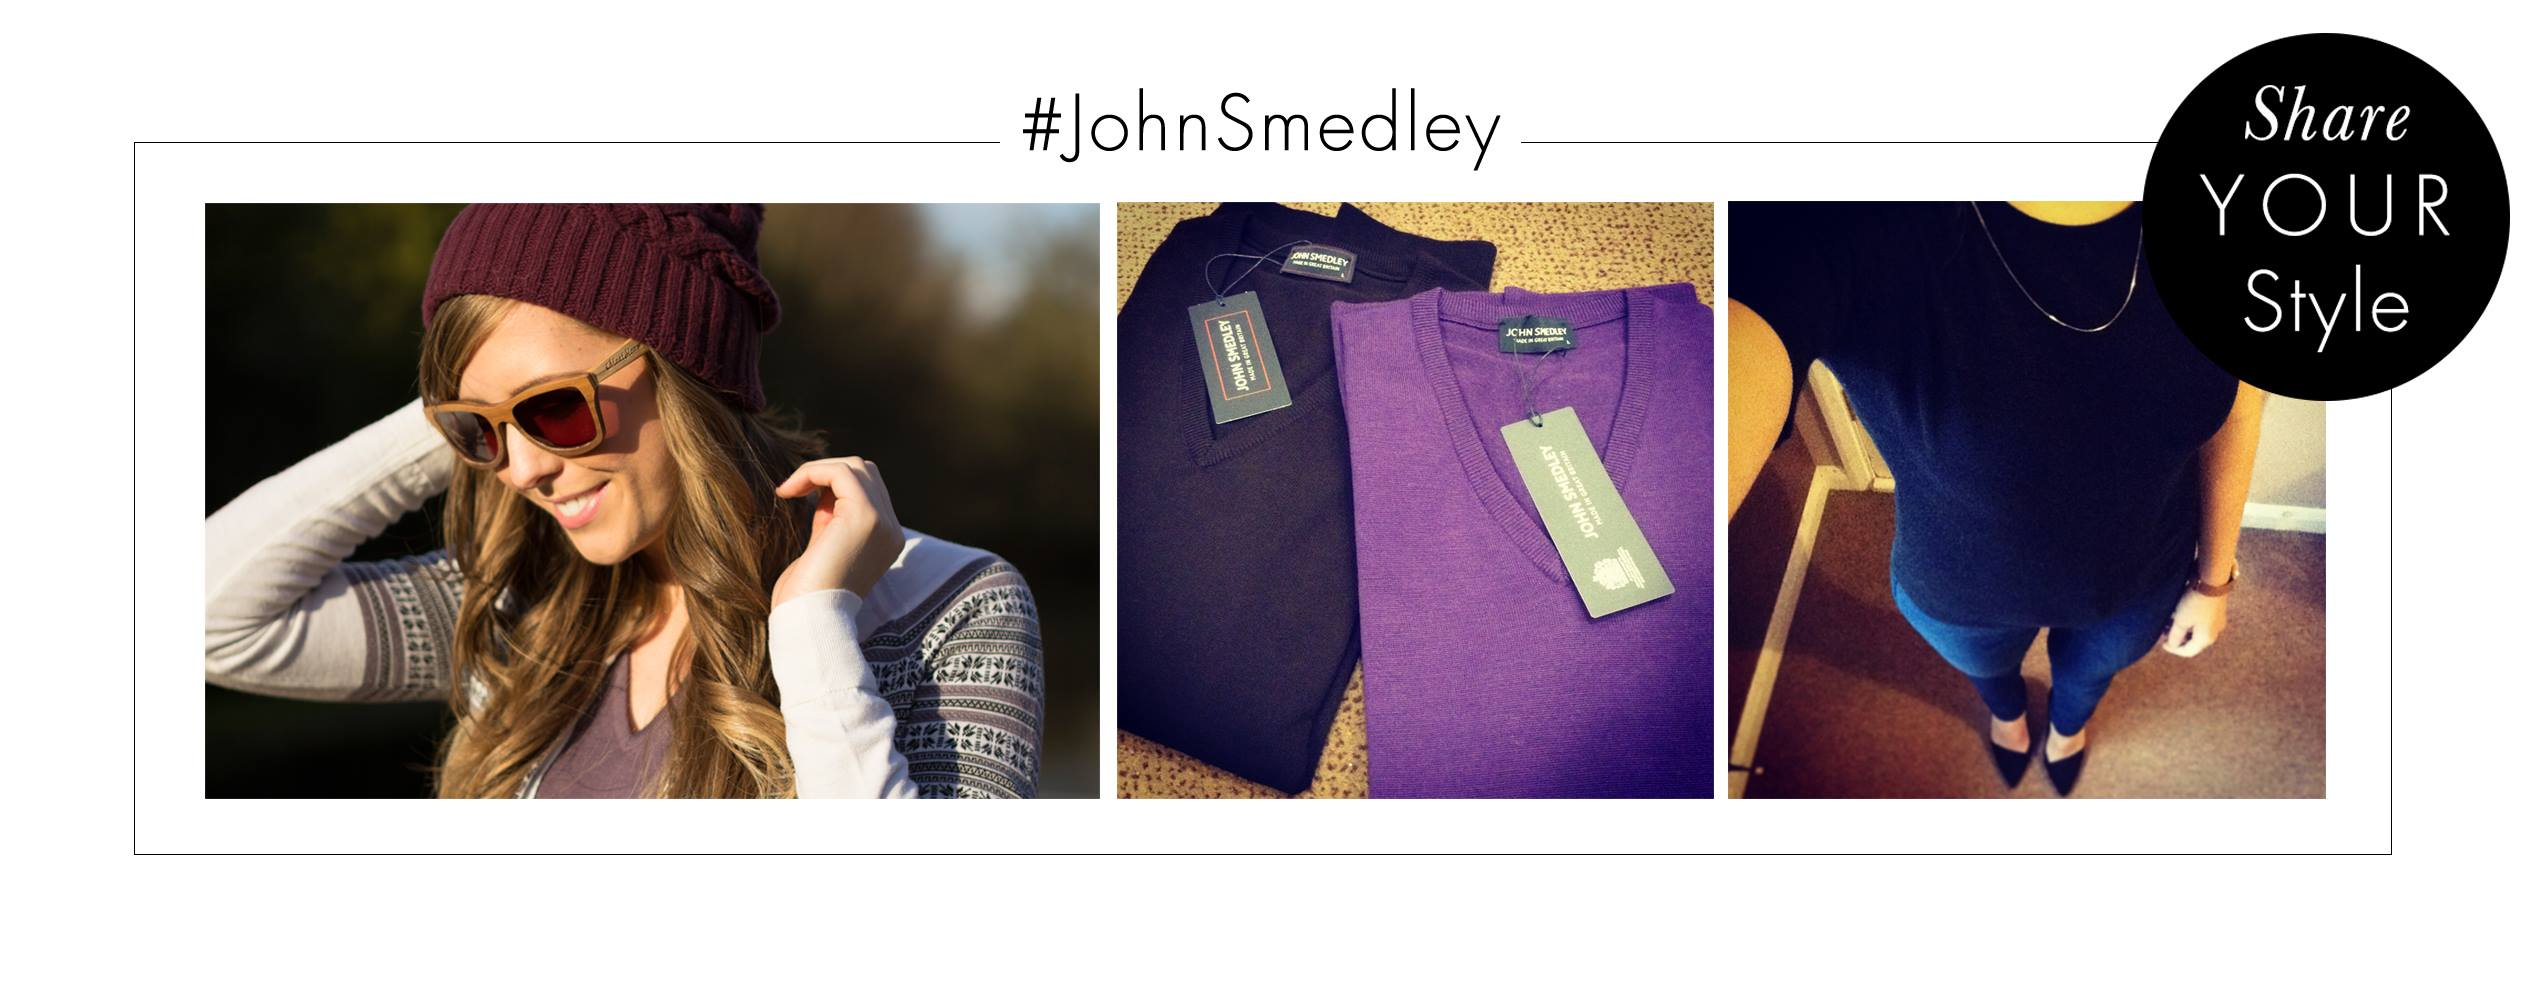 About John Smedley Outlet Homepage